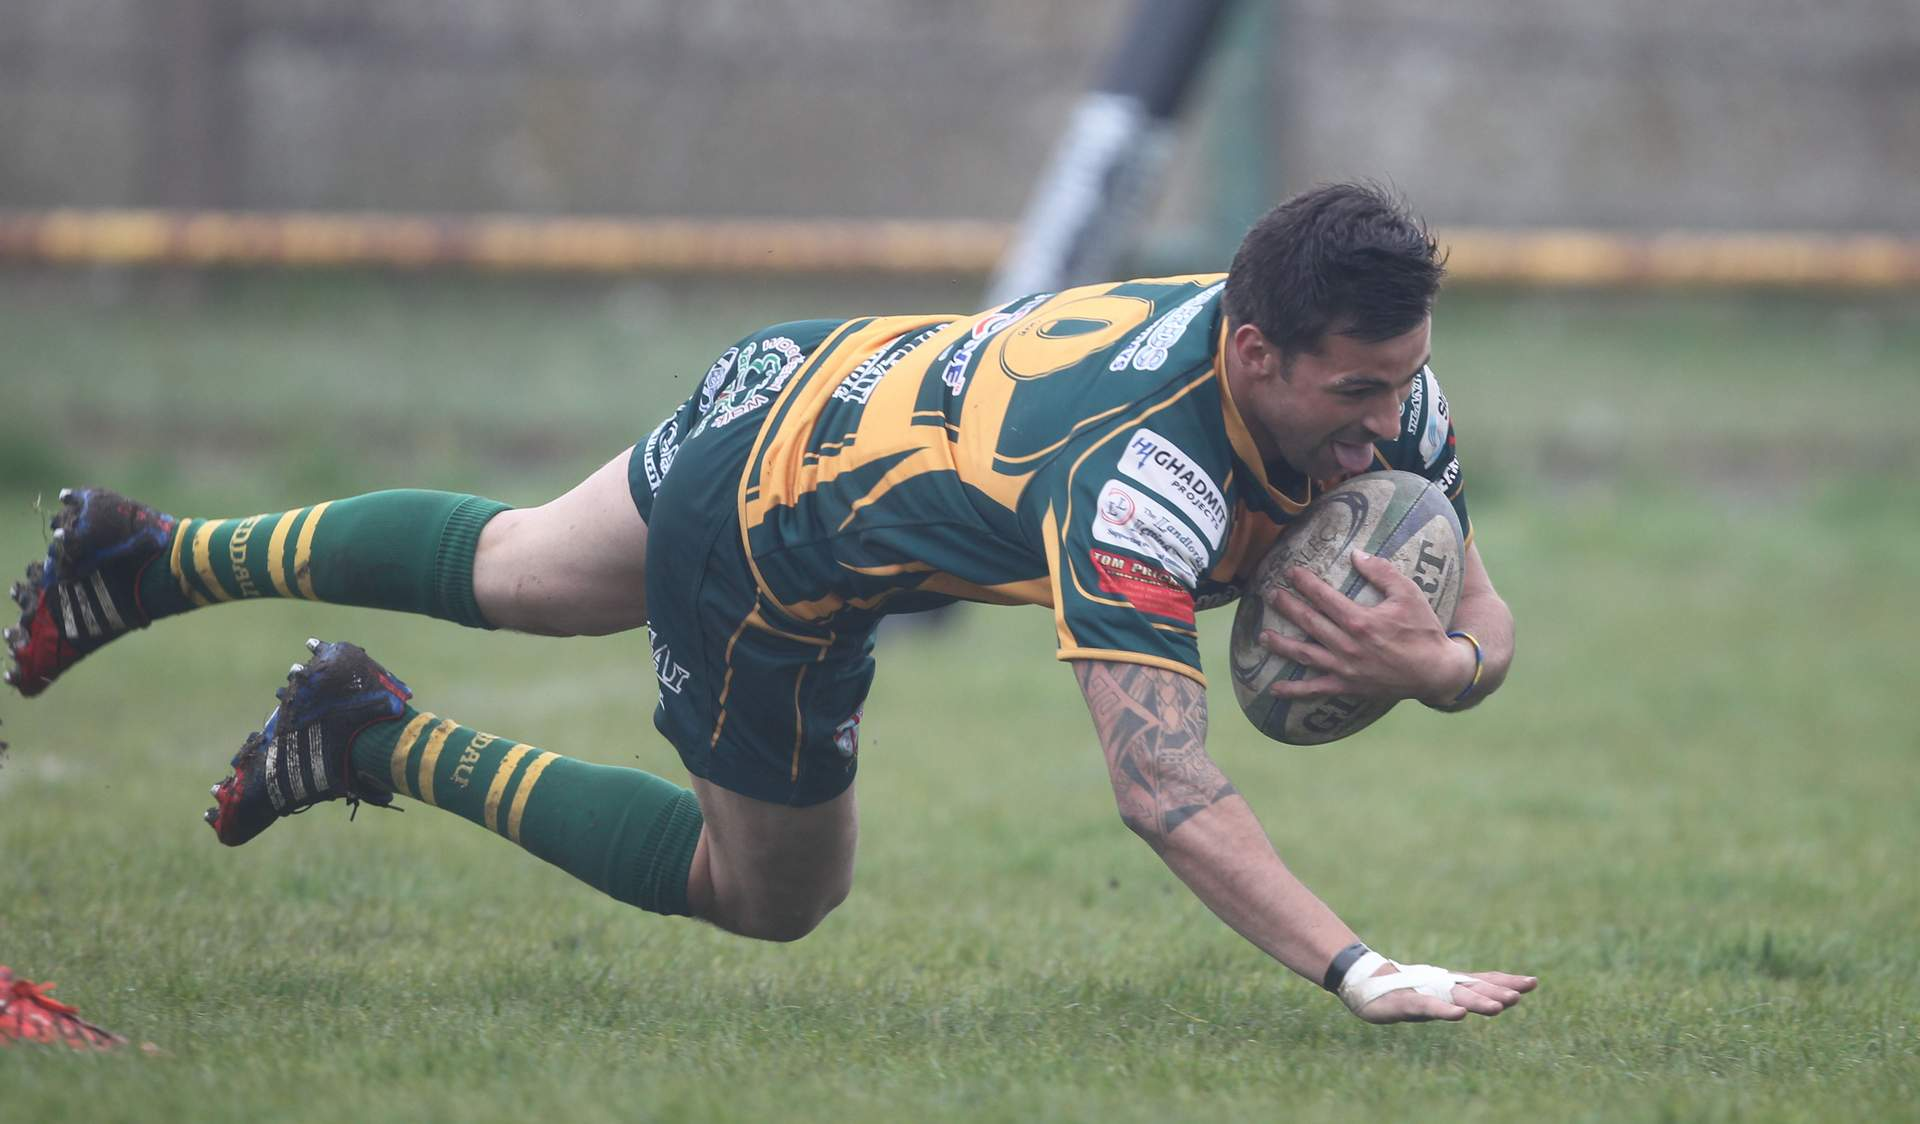 Chatham stars for Beddau - Tata stay top